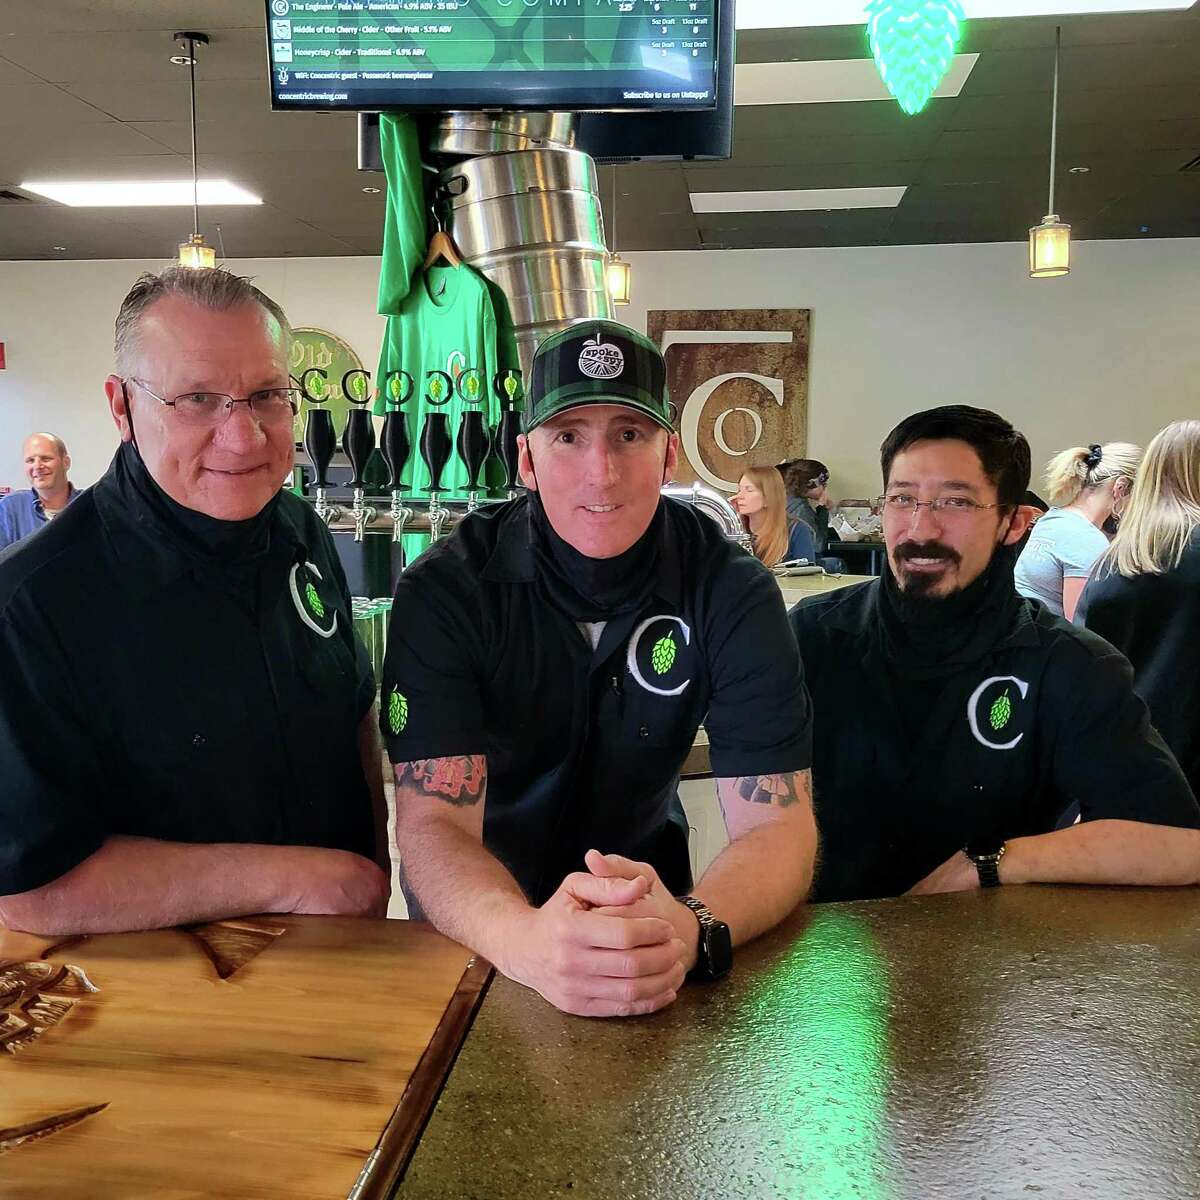 From left, Dave Peichert, Drew France and Brian Aida pose for a photo at Concentric Brewing Company in Portland, which they all own.